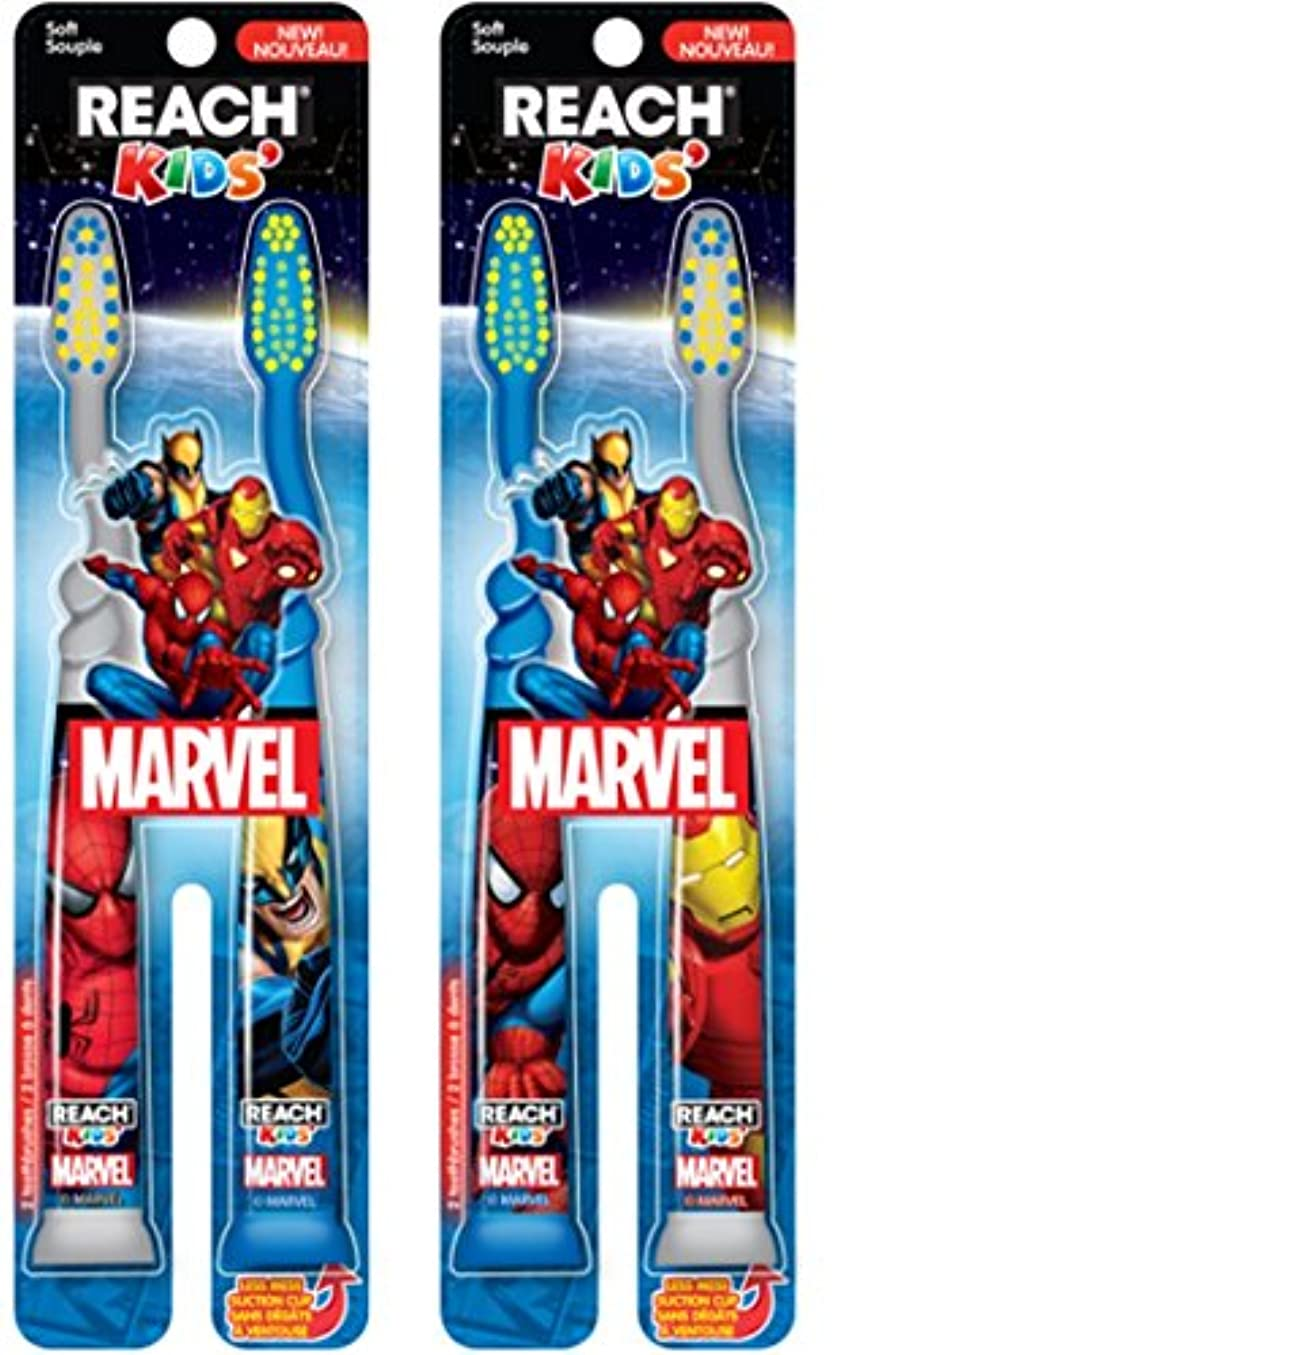 権限シーンインストールReach Kids Mavel Soft Toothbrush, 2 Count by Reach